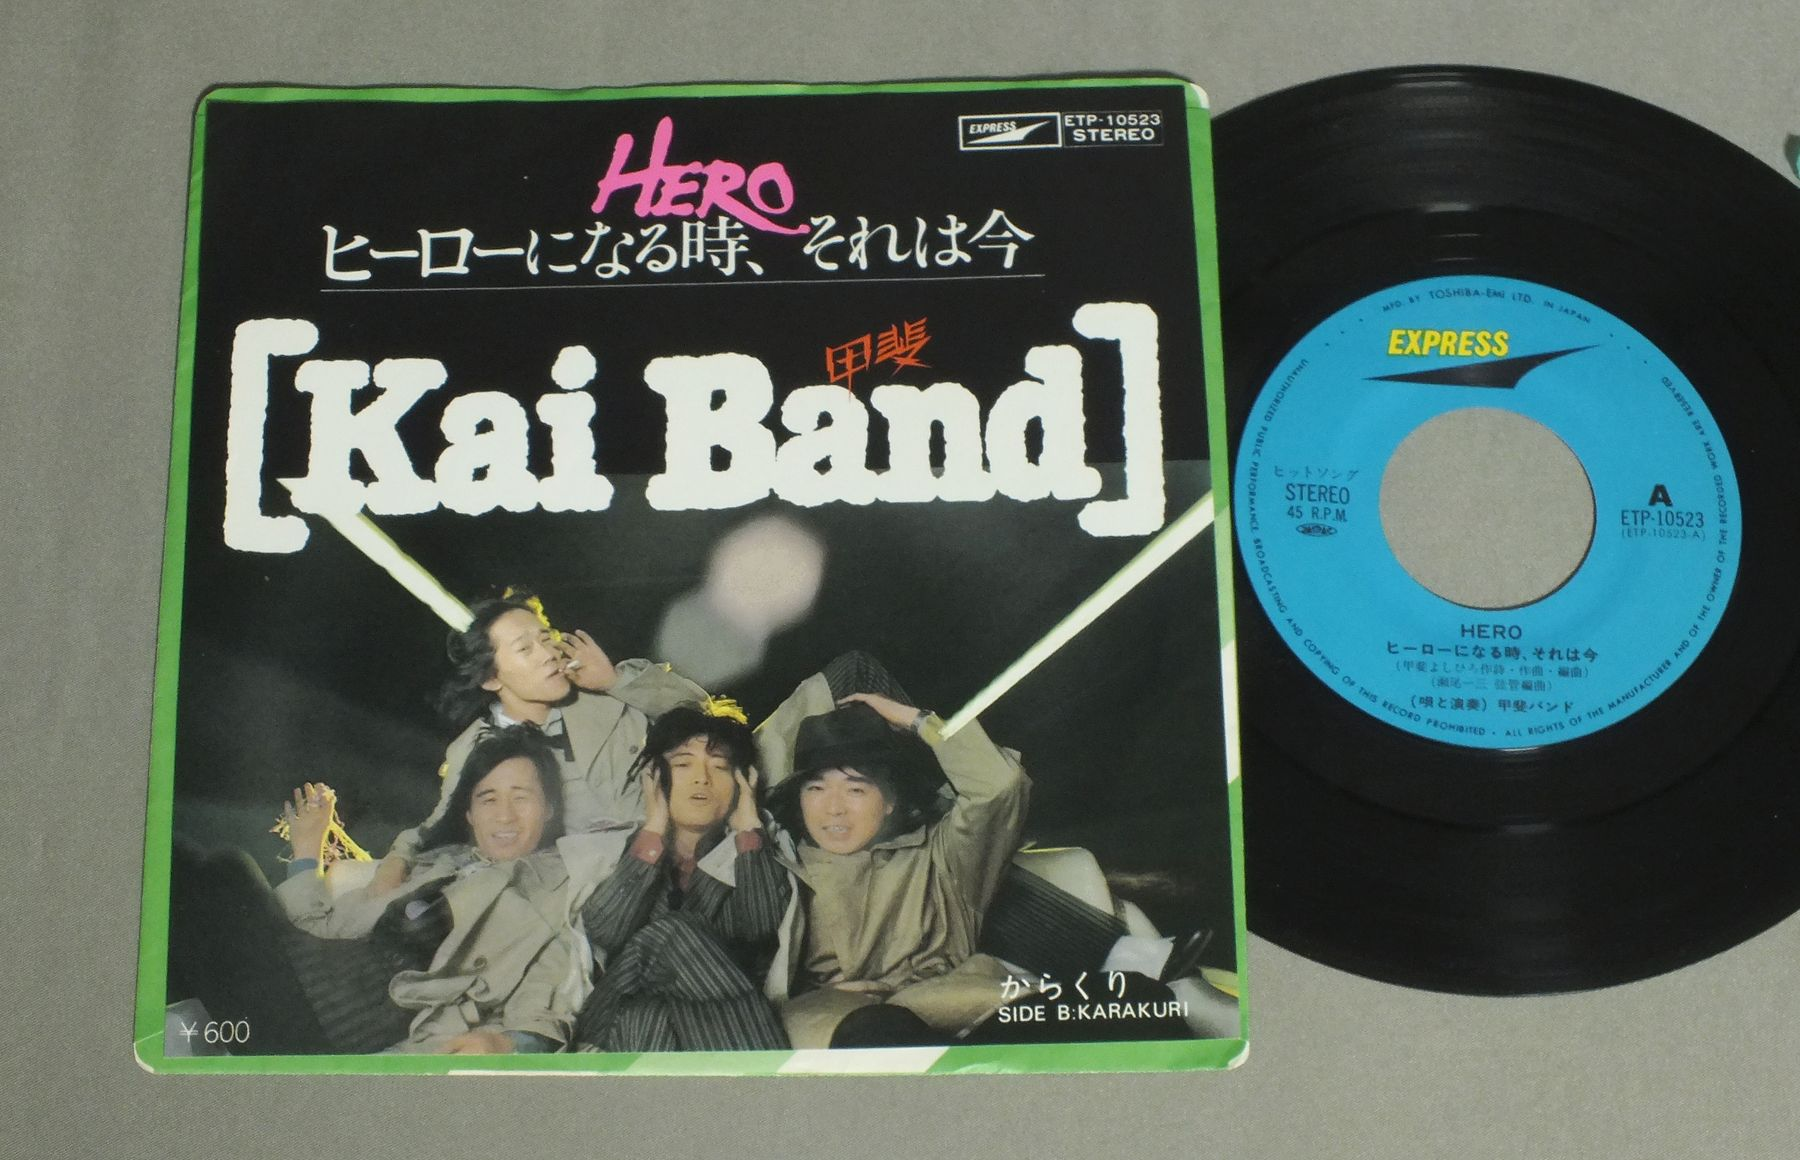 KAI BAND HERO